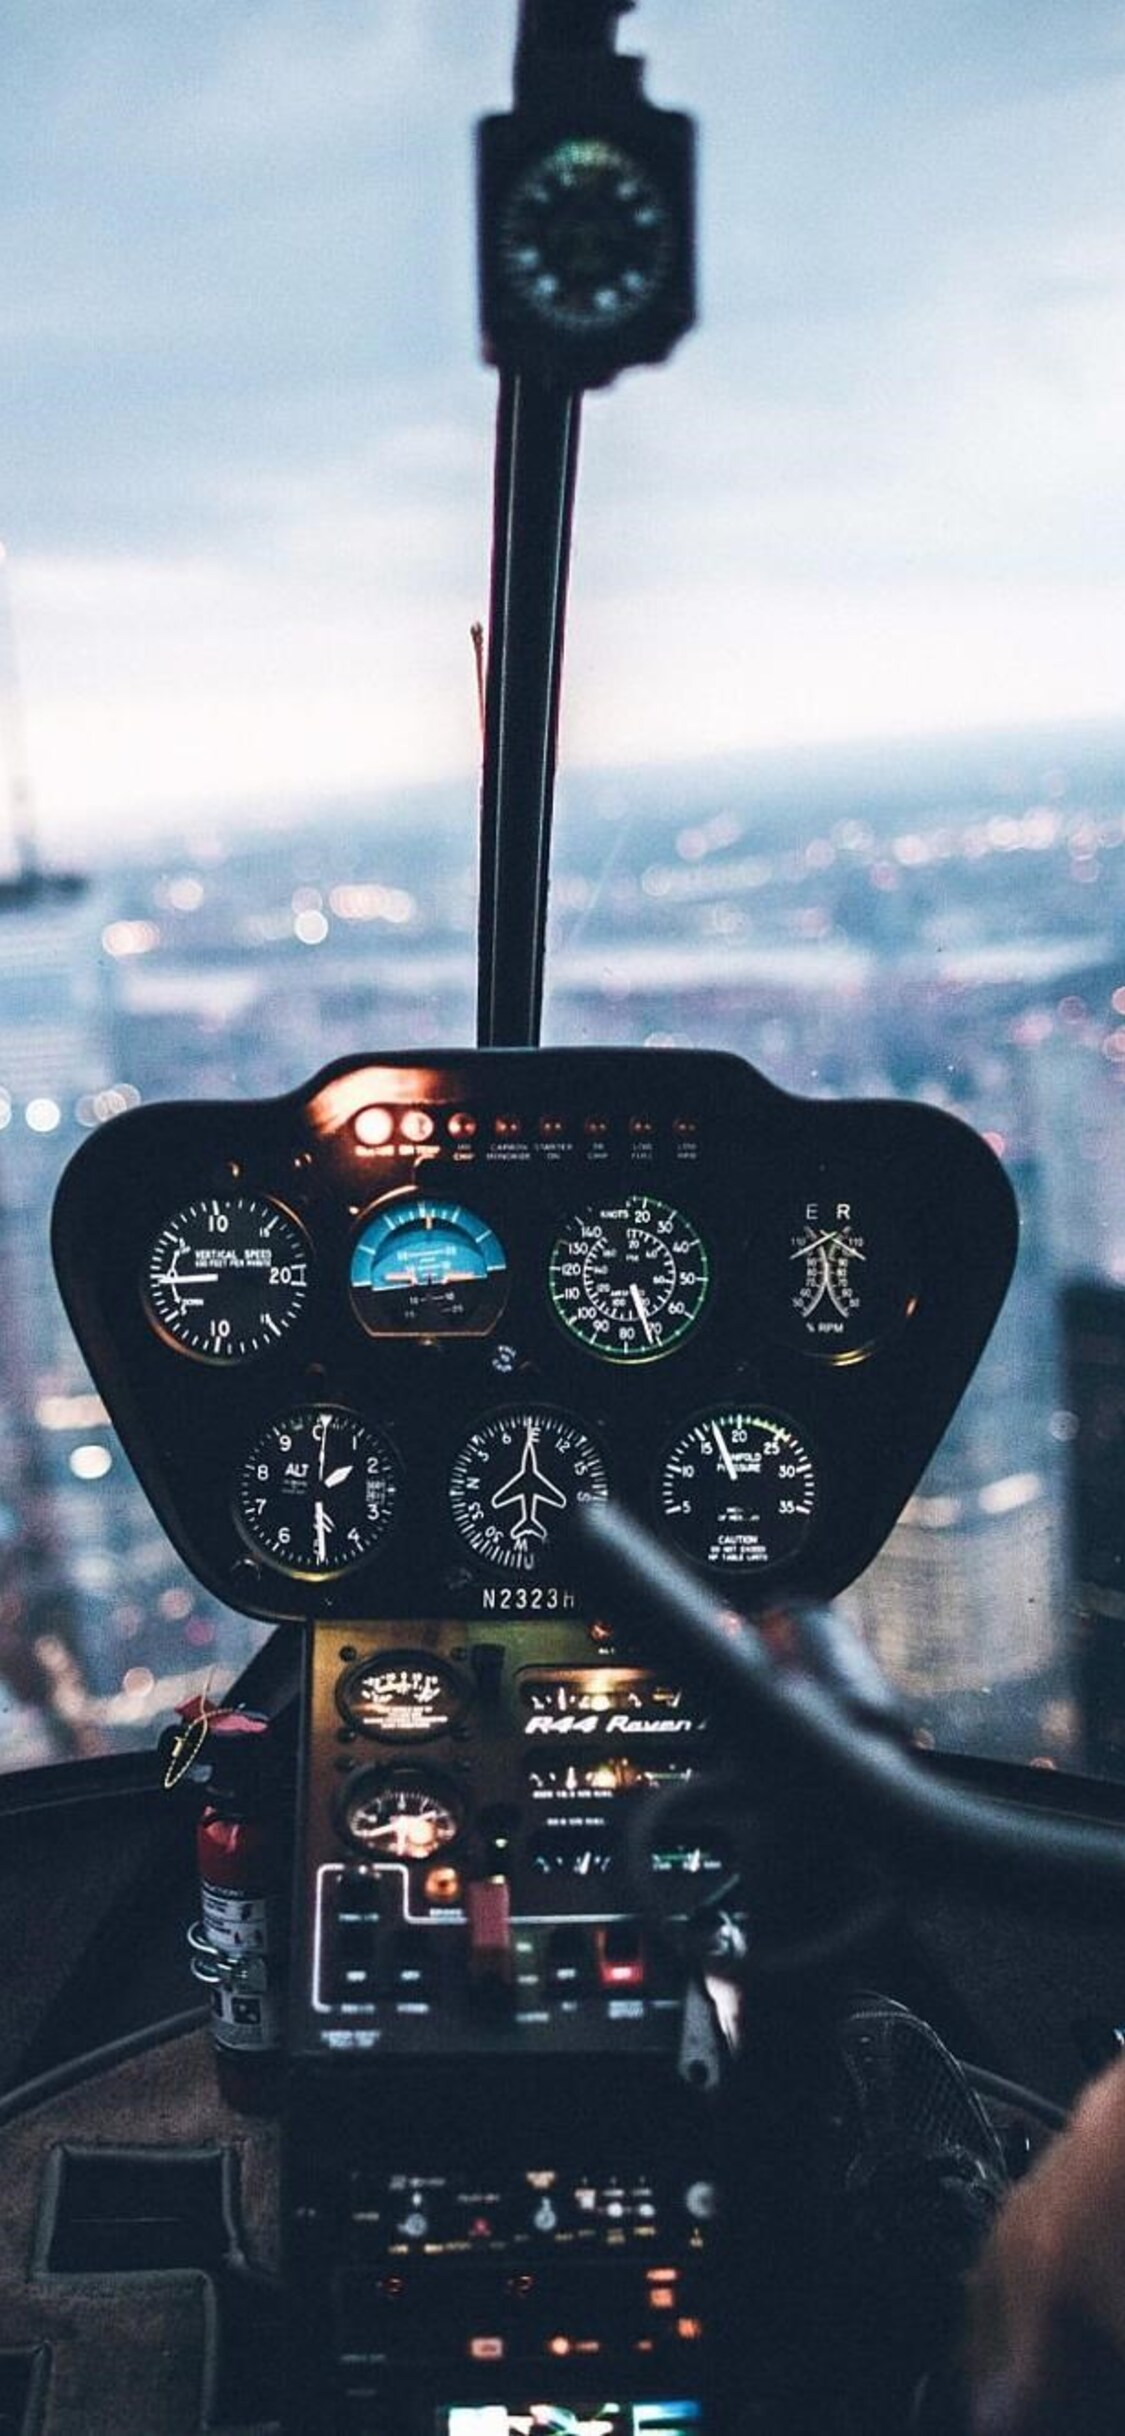 1125x2436 Helicopter Inside View Iphone Xs Iphone 10 Iphone X Hd 4k